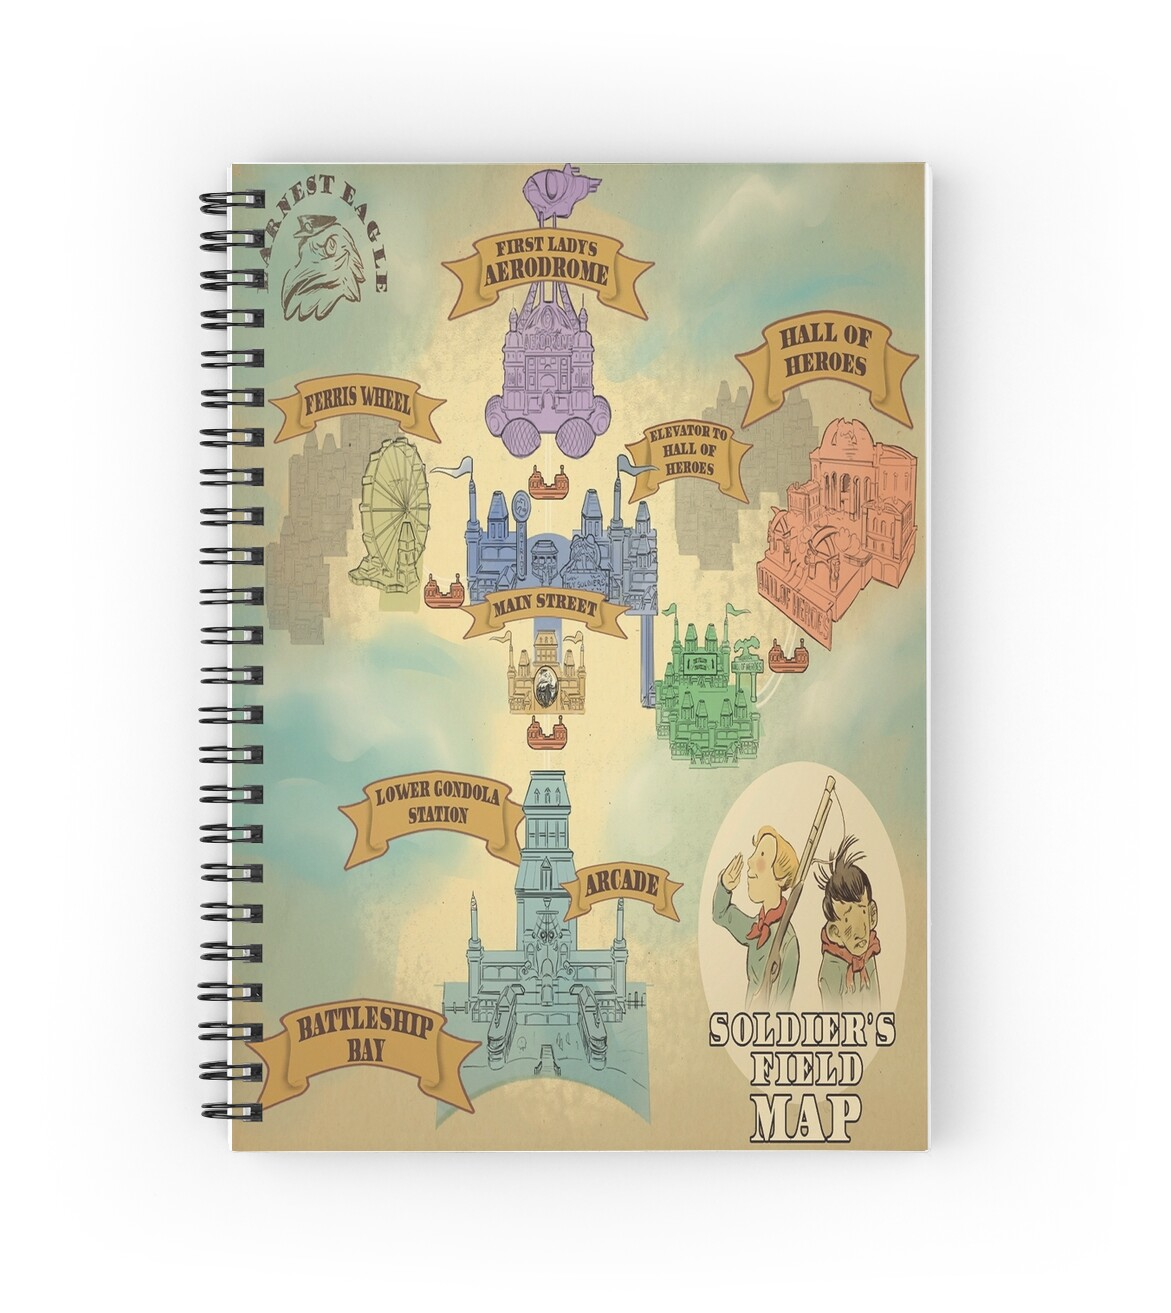 """BioShock Infinite – Soldier's Field Map"" Spiral Notebooks by PonchTheOwl 